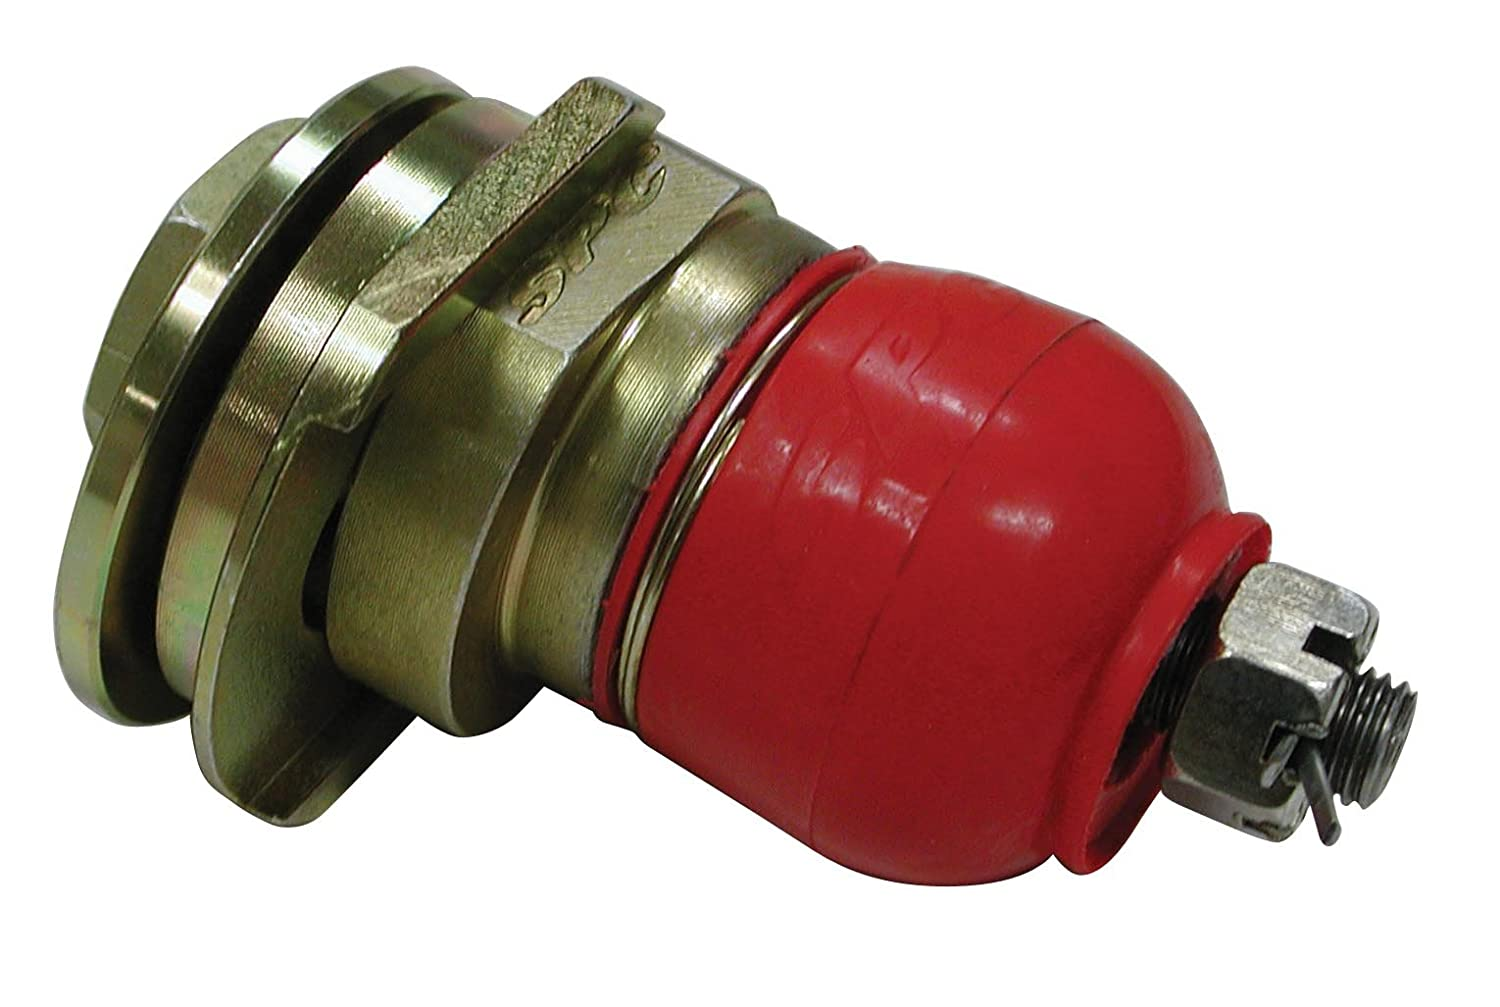 Specialty Products Company 67115 Adjustable Ball Joint for Ford/Mazda SPT67115